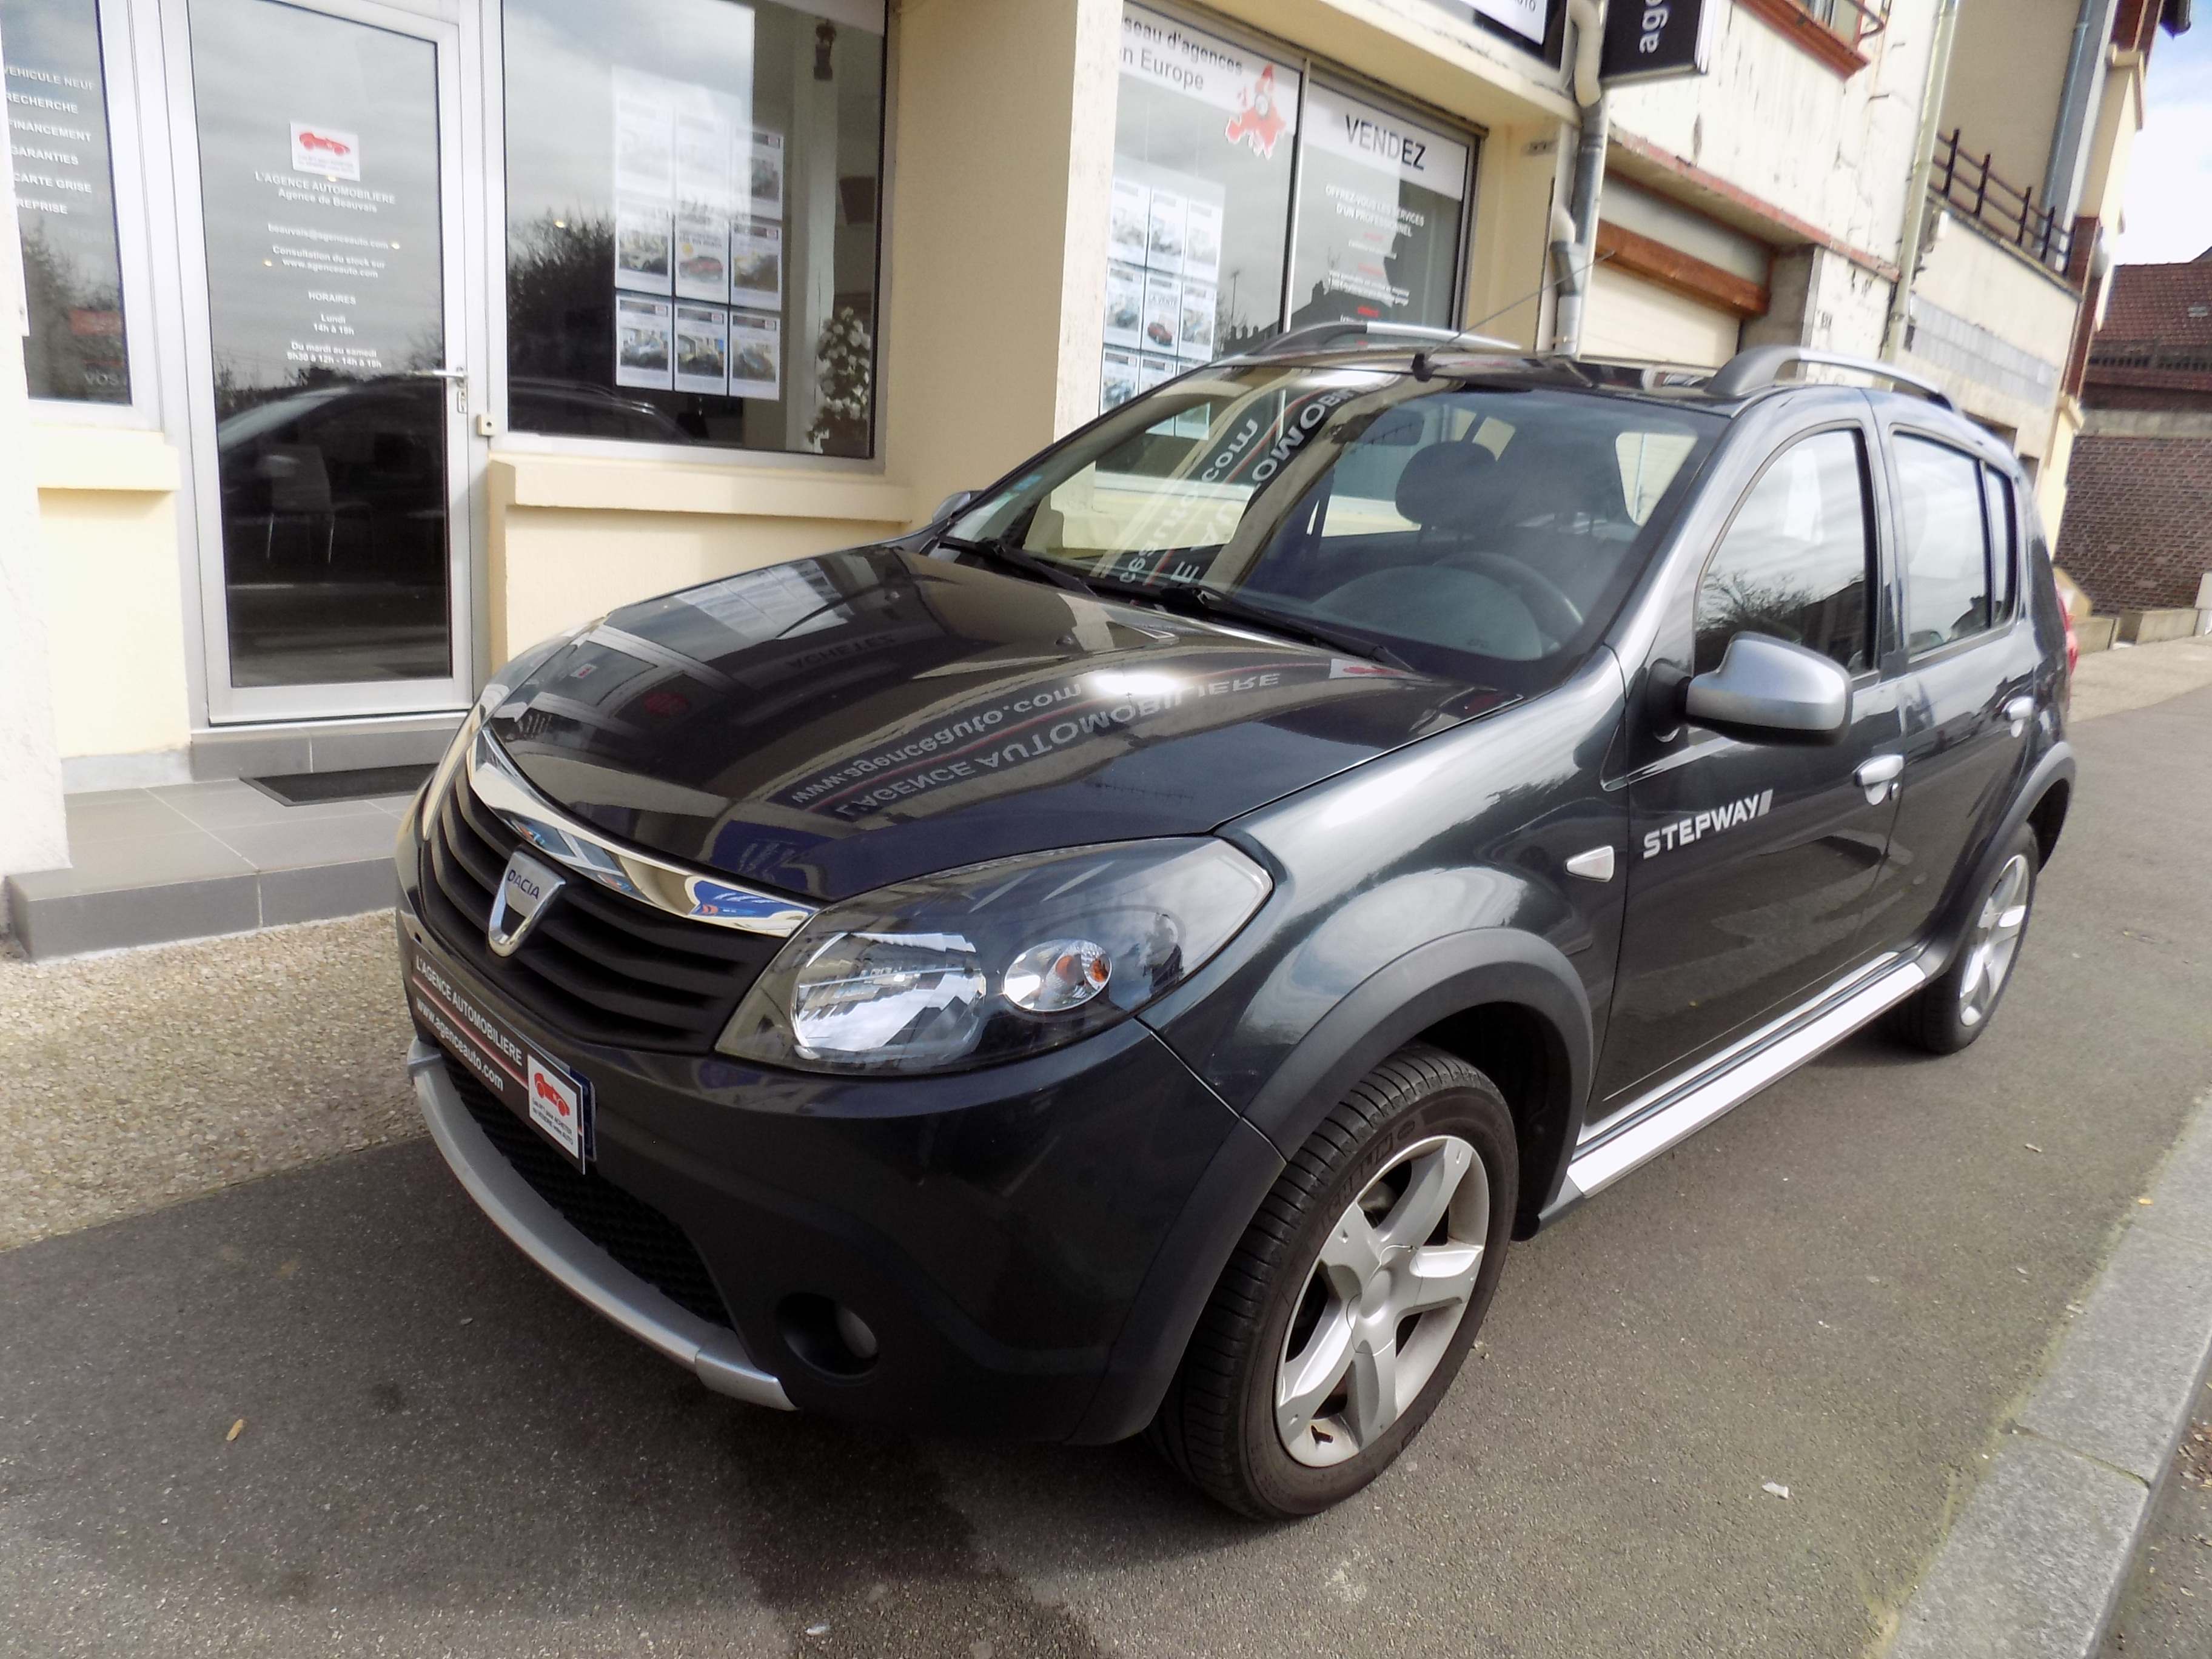 dacia sandero 1 5 dci 90 stepway occasion beauvais pas cher voiture occasion oise 60000. Black Bedroom Furniture Sets. Home Design Ideas